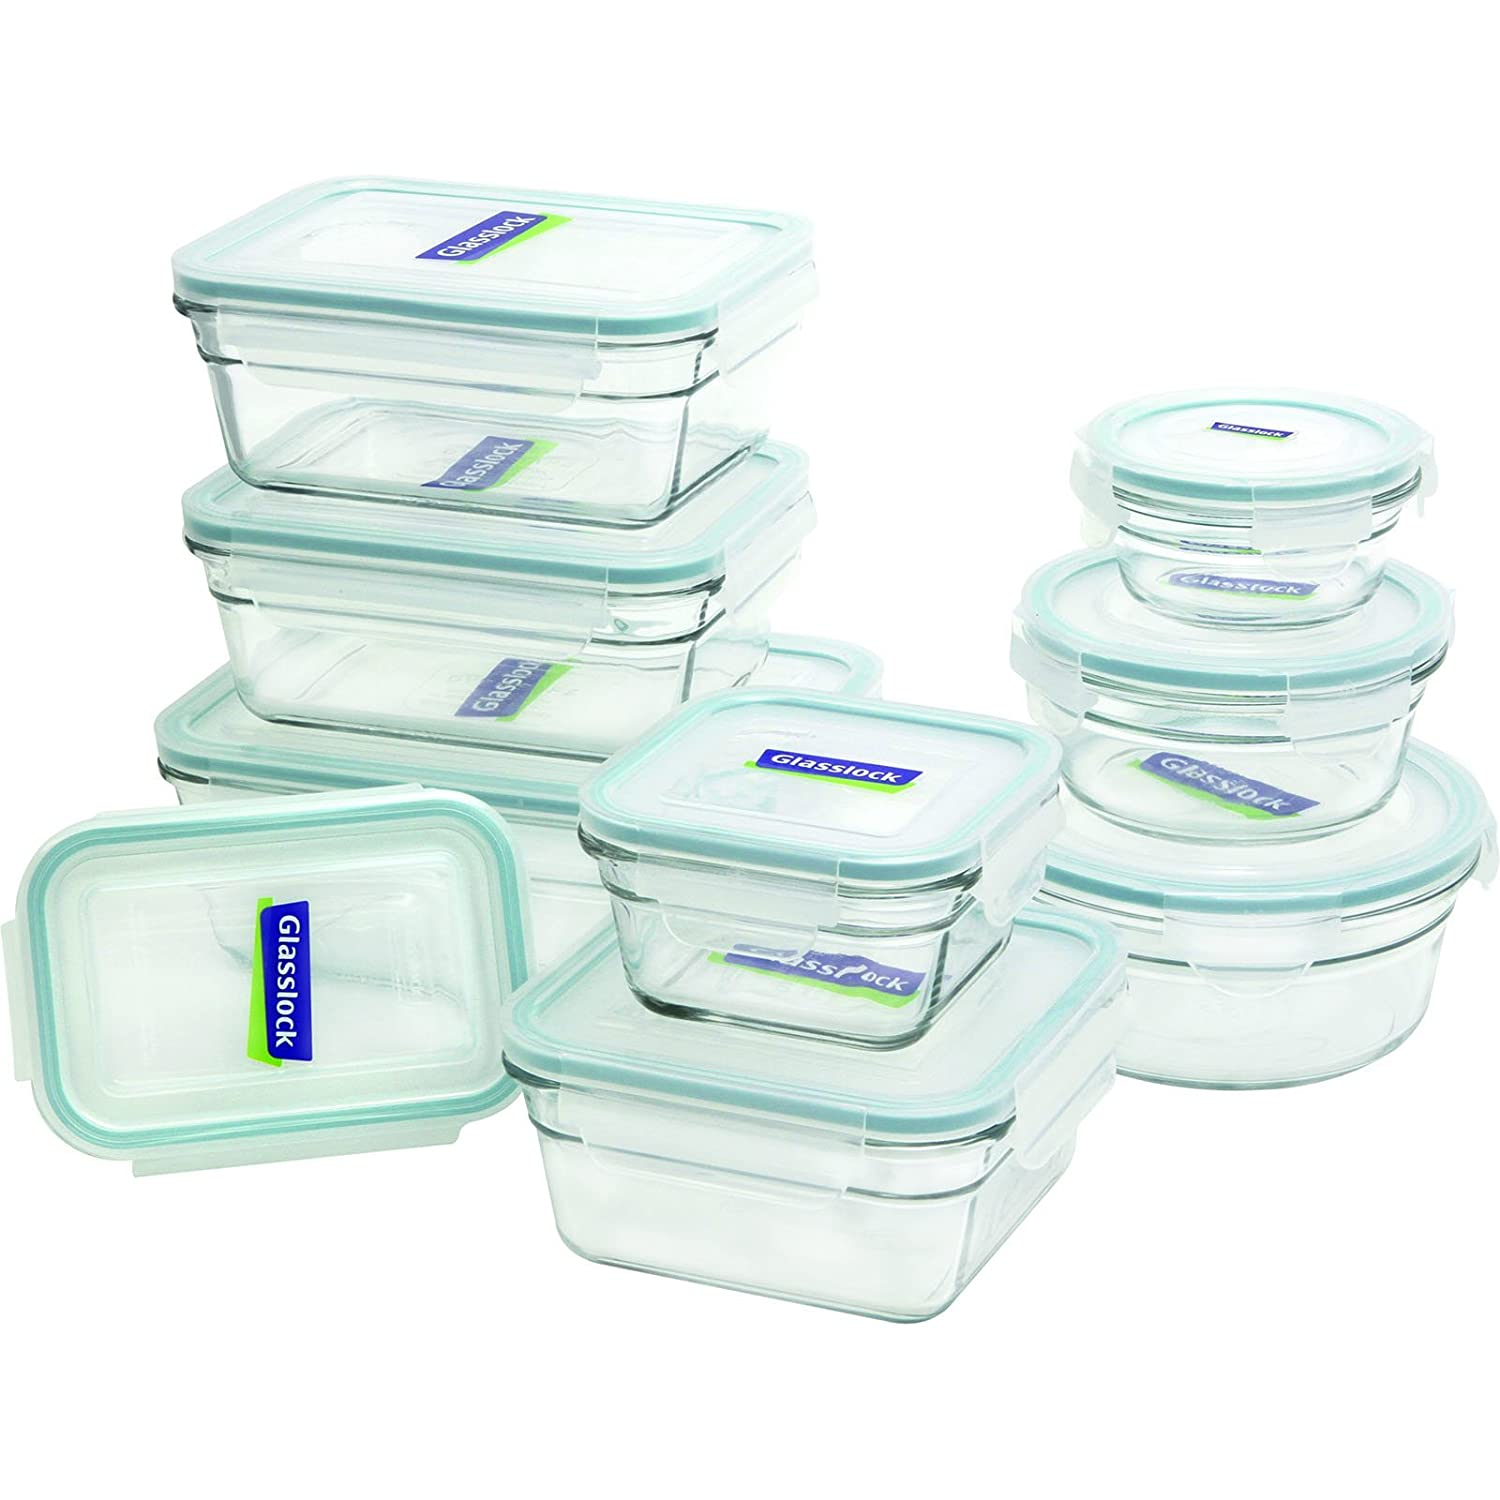 Glasslock 1129218-Piece Assorted Oven Safe Container Set (Renewed)